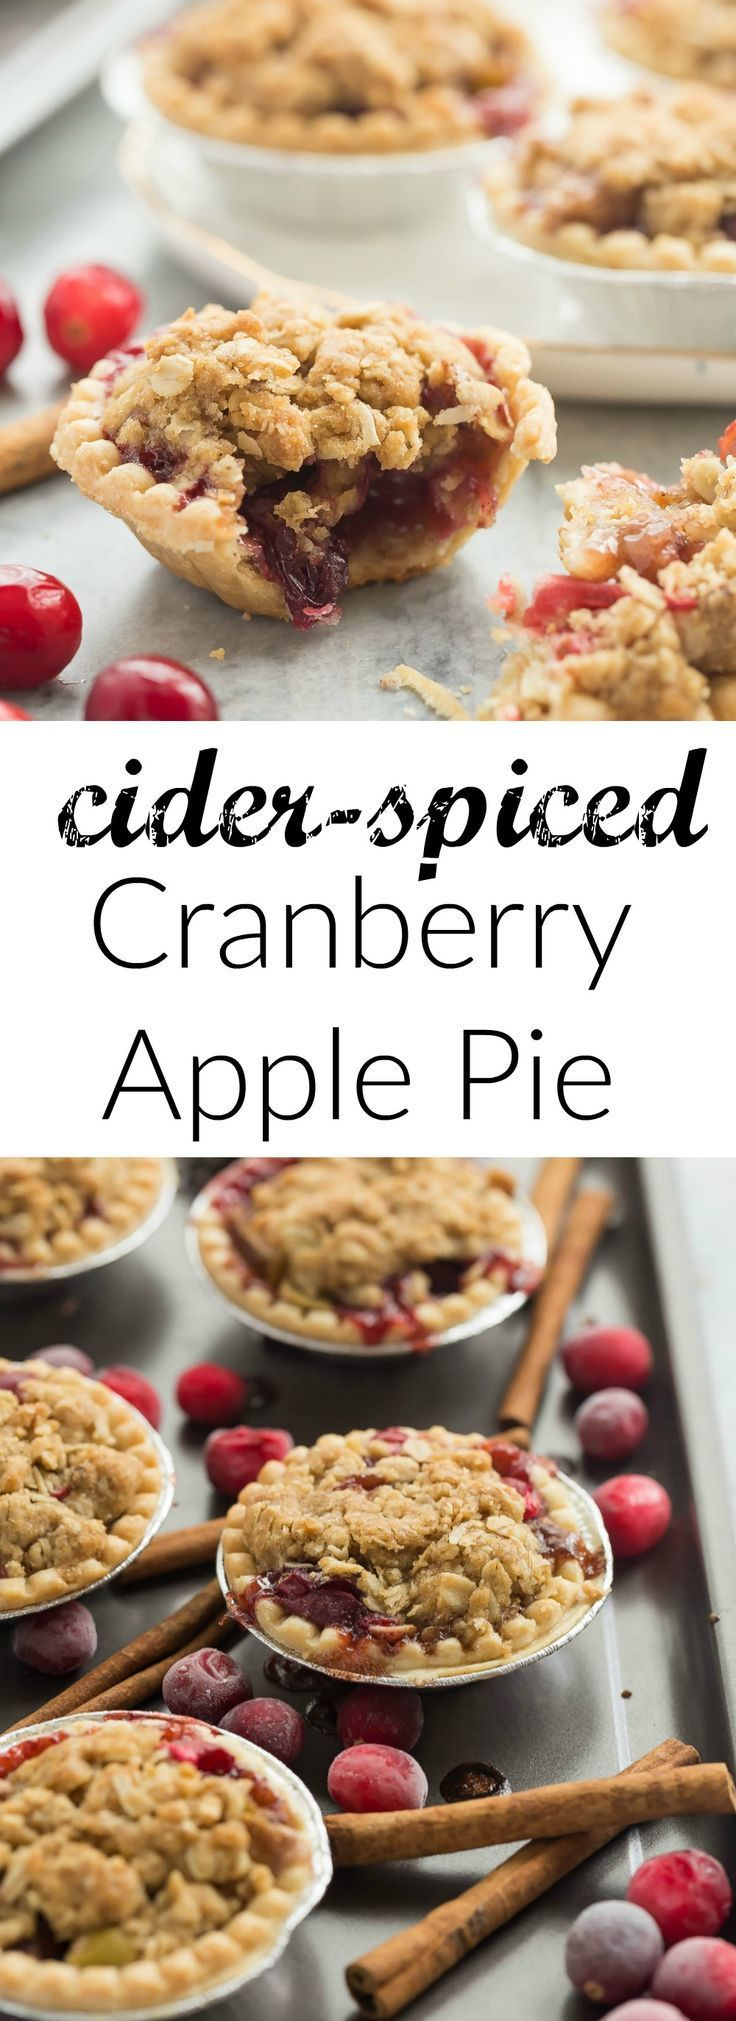 These Mini Cider Spiced Cranberry Apple Pies are so perfect for fall — I make them in pre-made tart shells for an easy holiday dessert that will impress your guests!